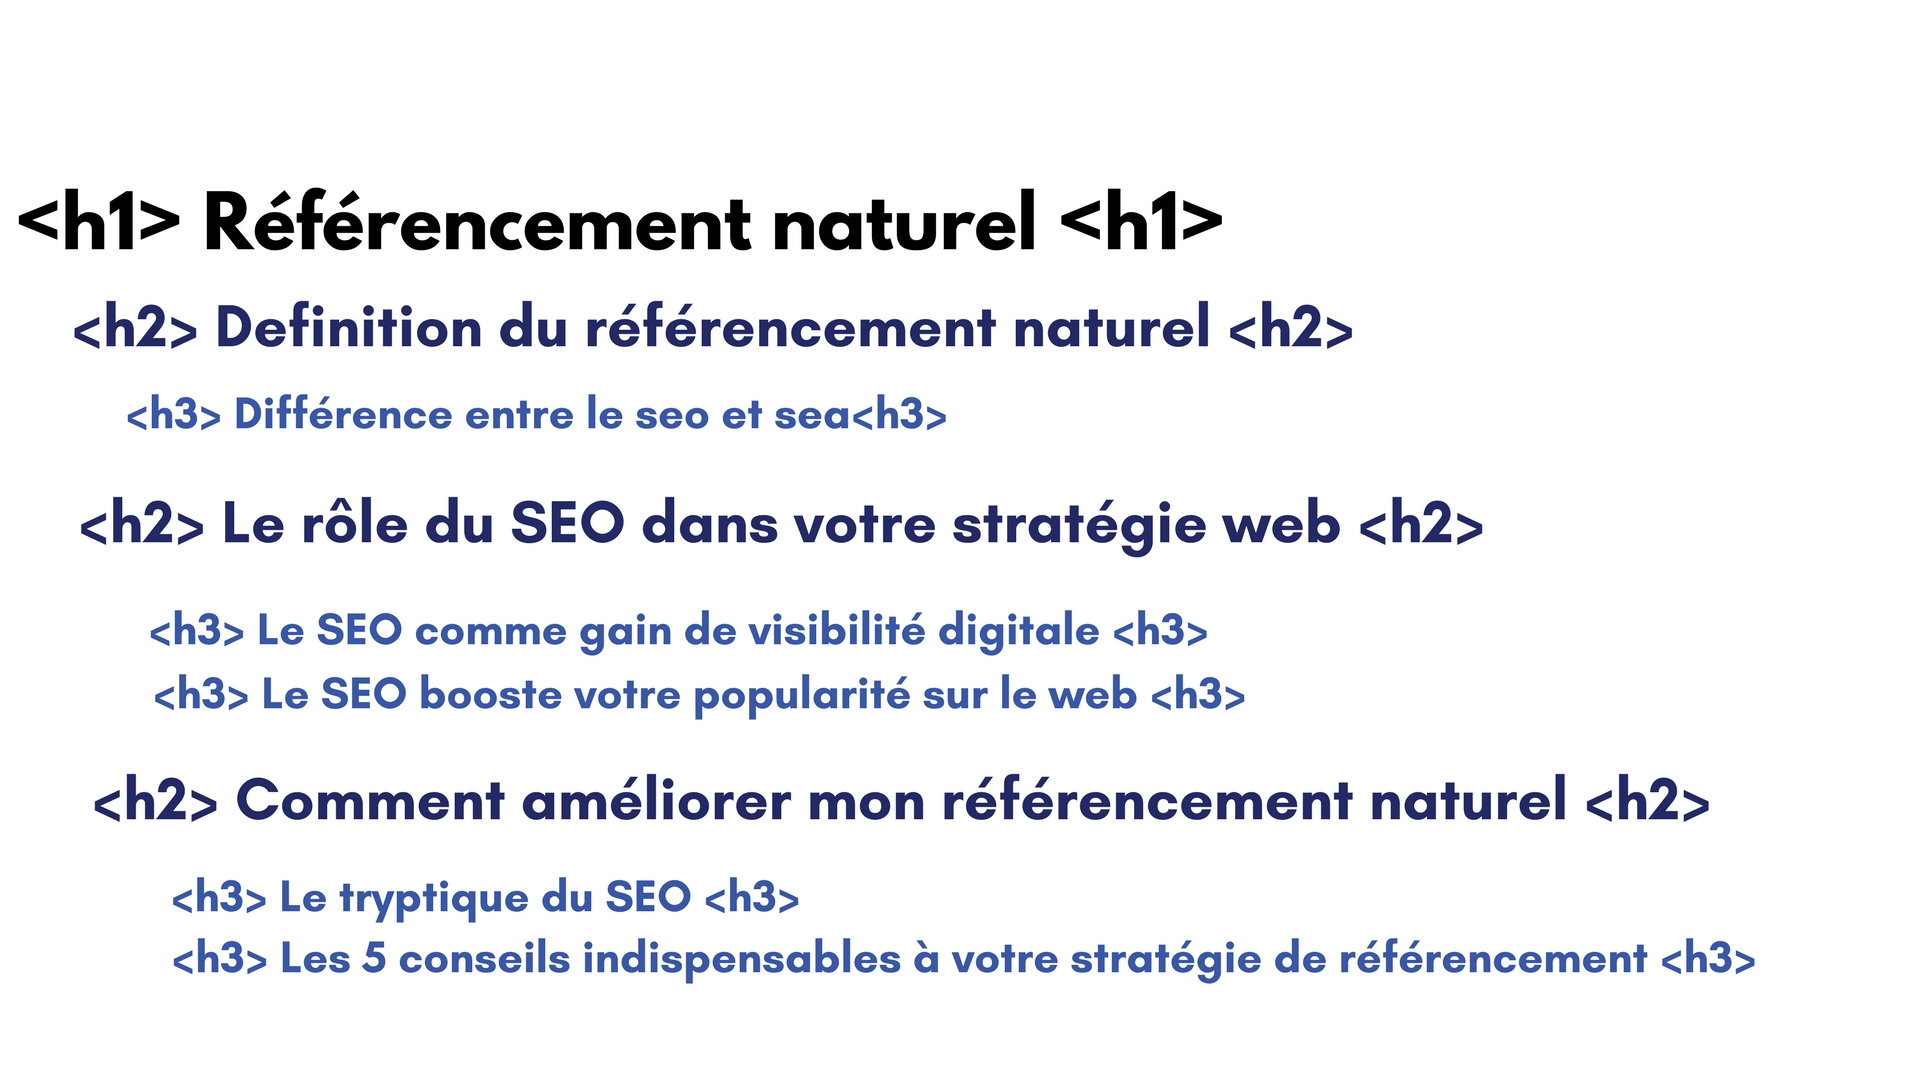 h1 seo referencement naturel cms